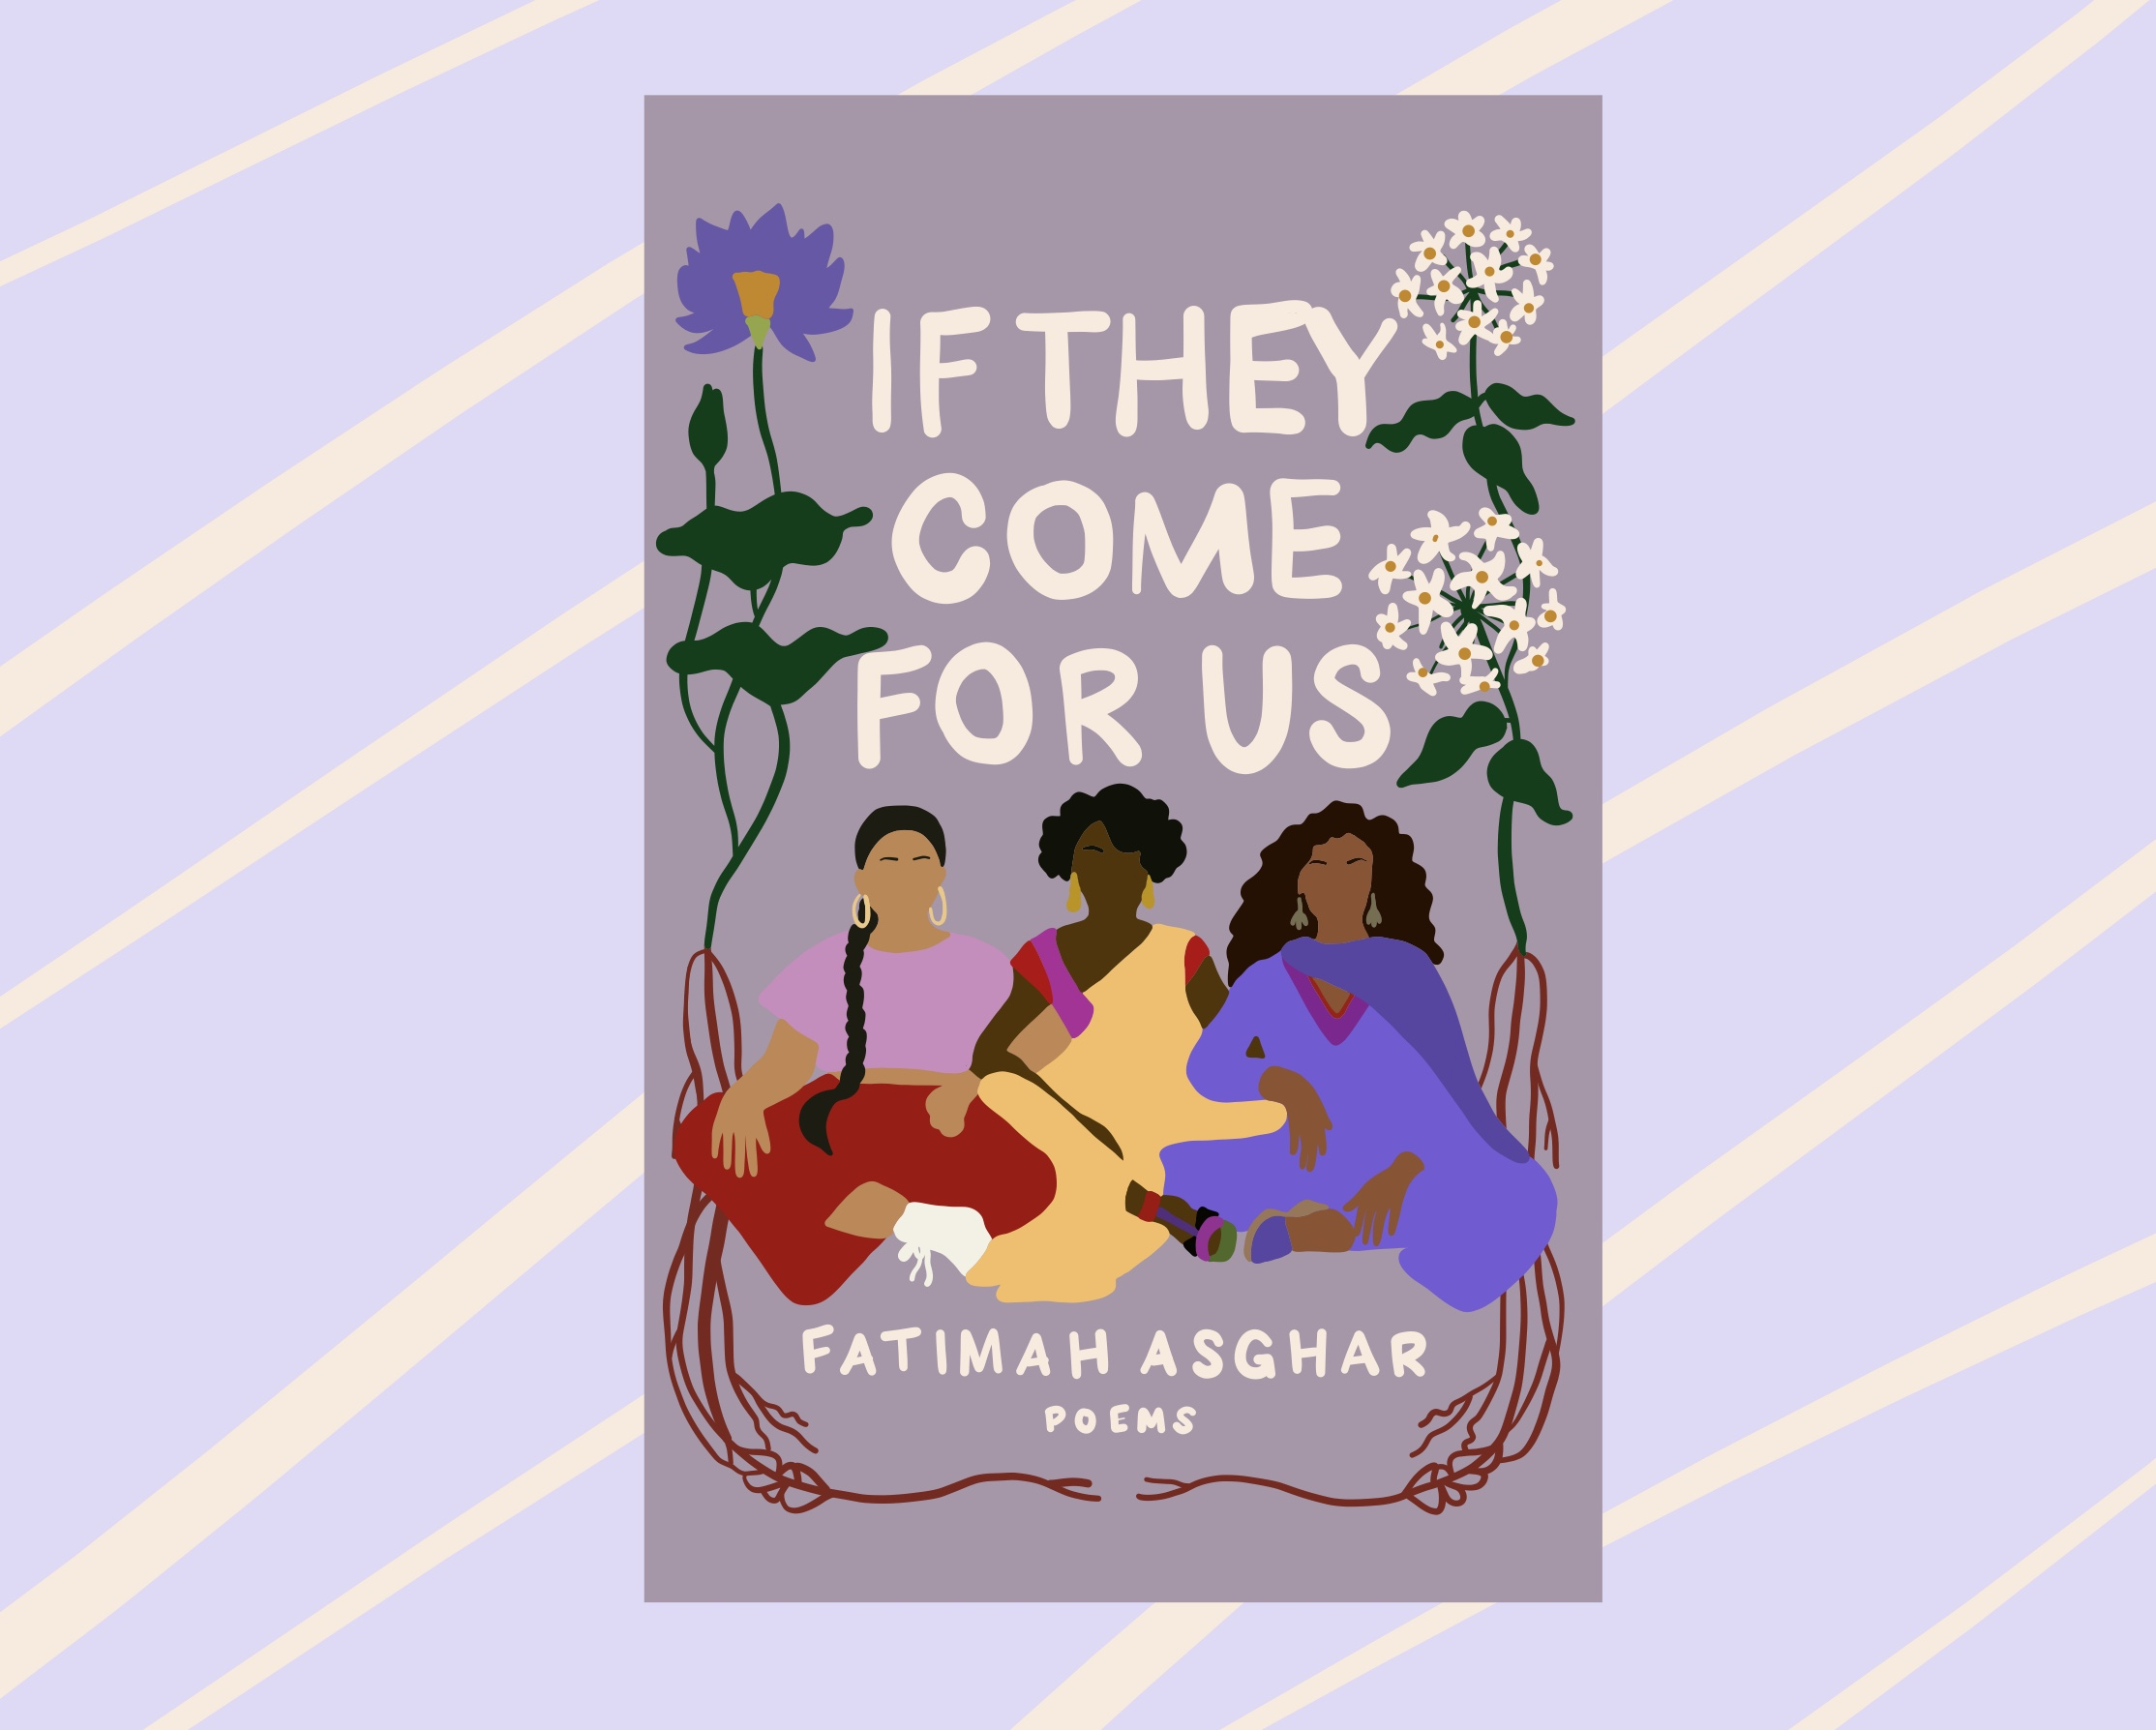 How Fatimah Asghar turned the traumas of colonialism and diaspora into poetry